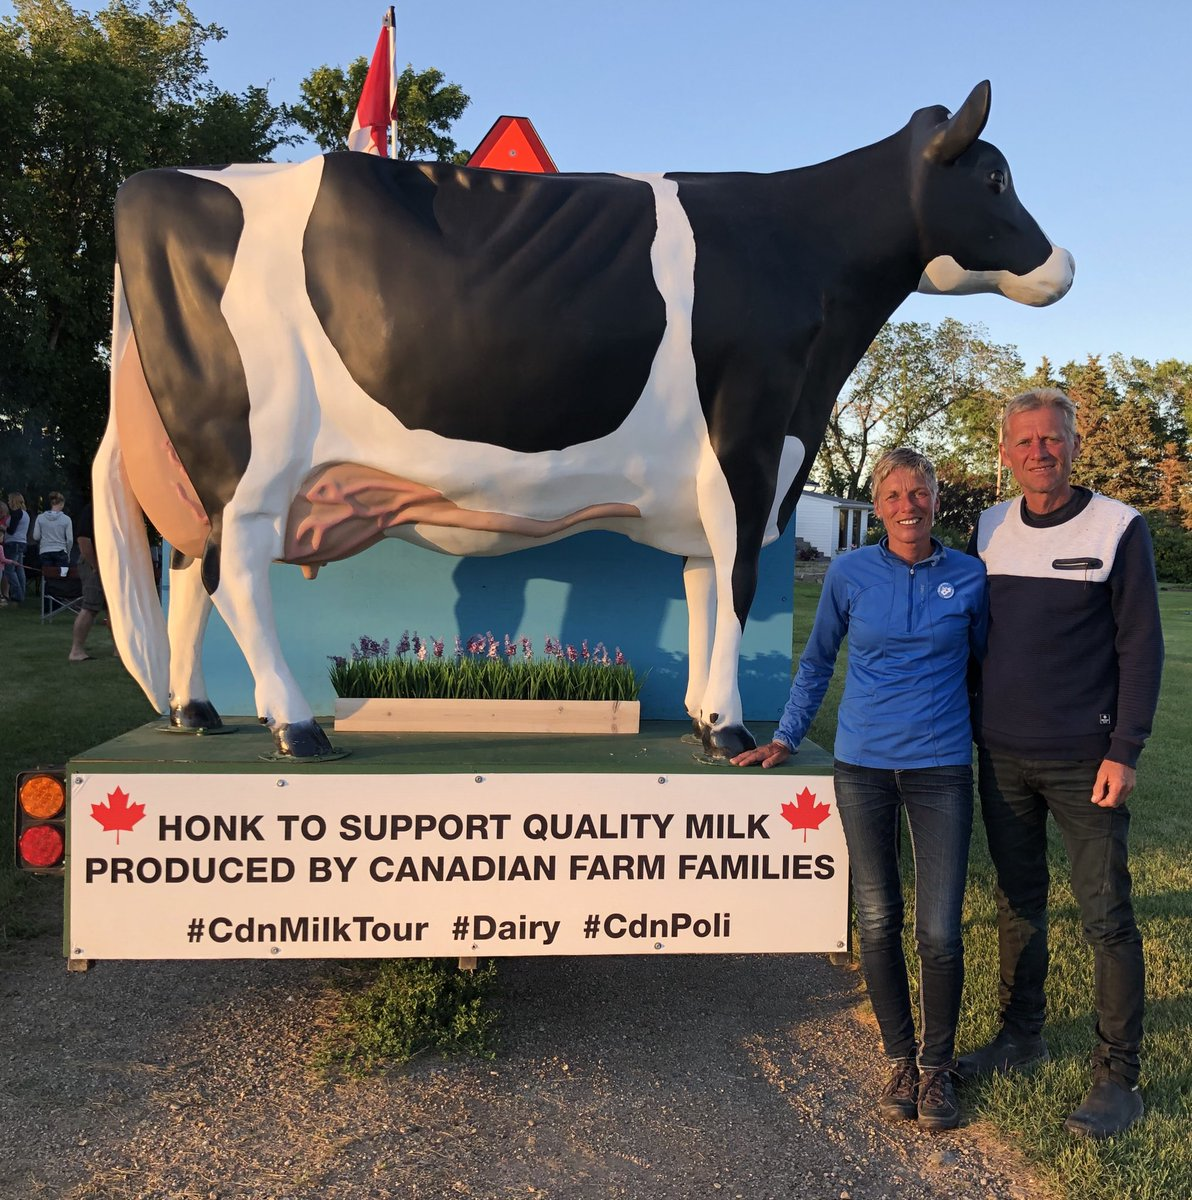 ONTARIO DAIRY COUPLE ON CROSS CANADA TOUR INVOLVED IN TRAGIC COLLISION